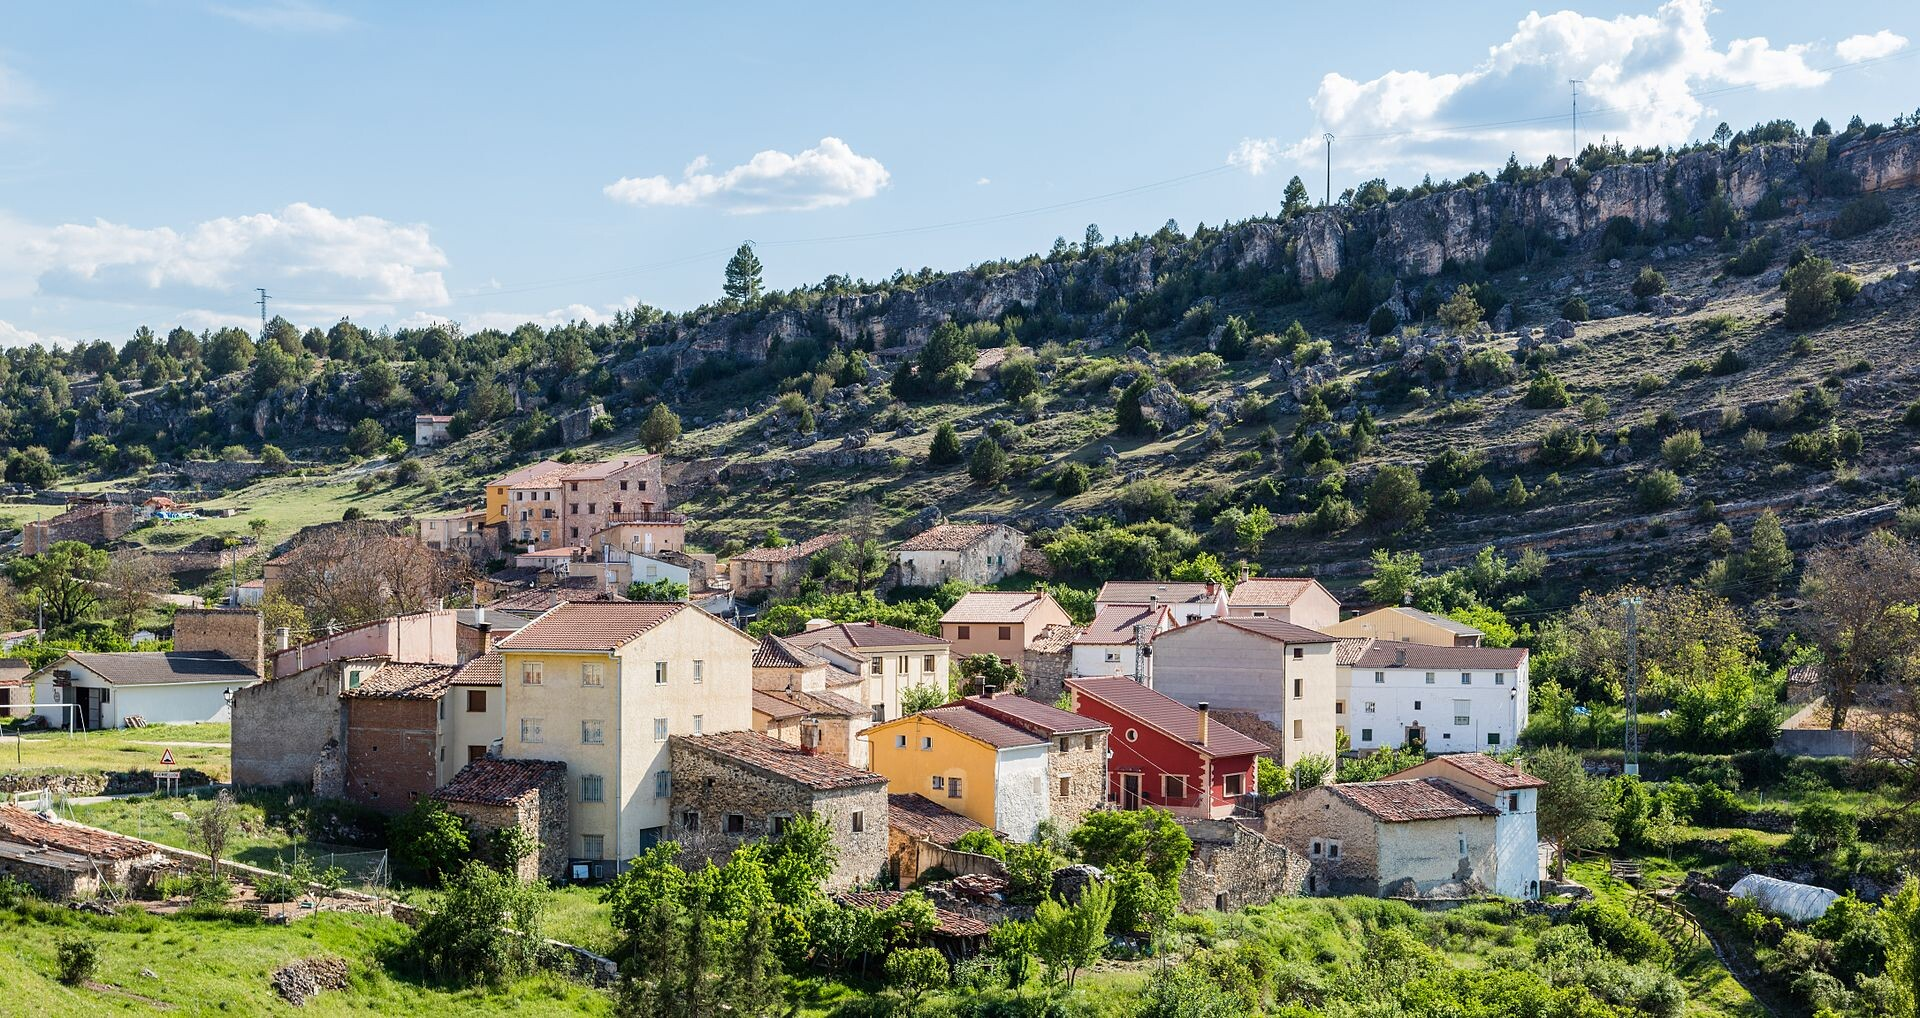 From the city to the village, this is the new rural Erasmus